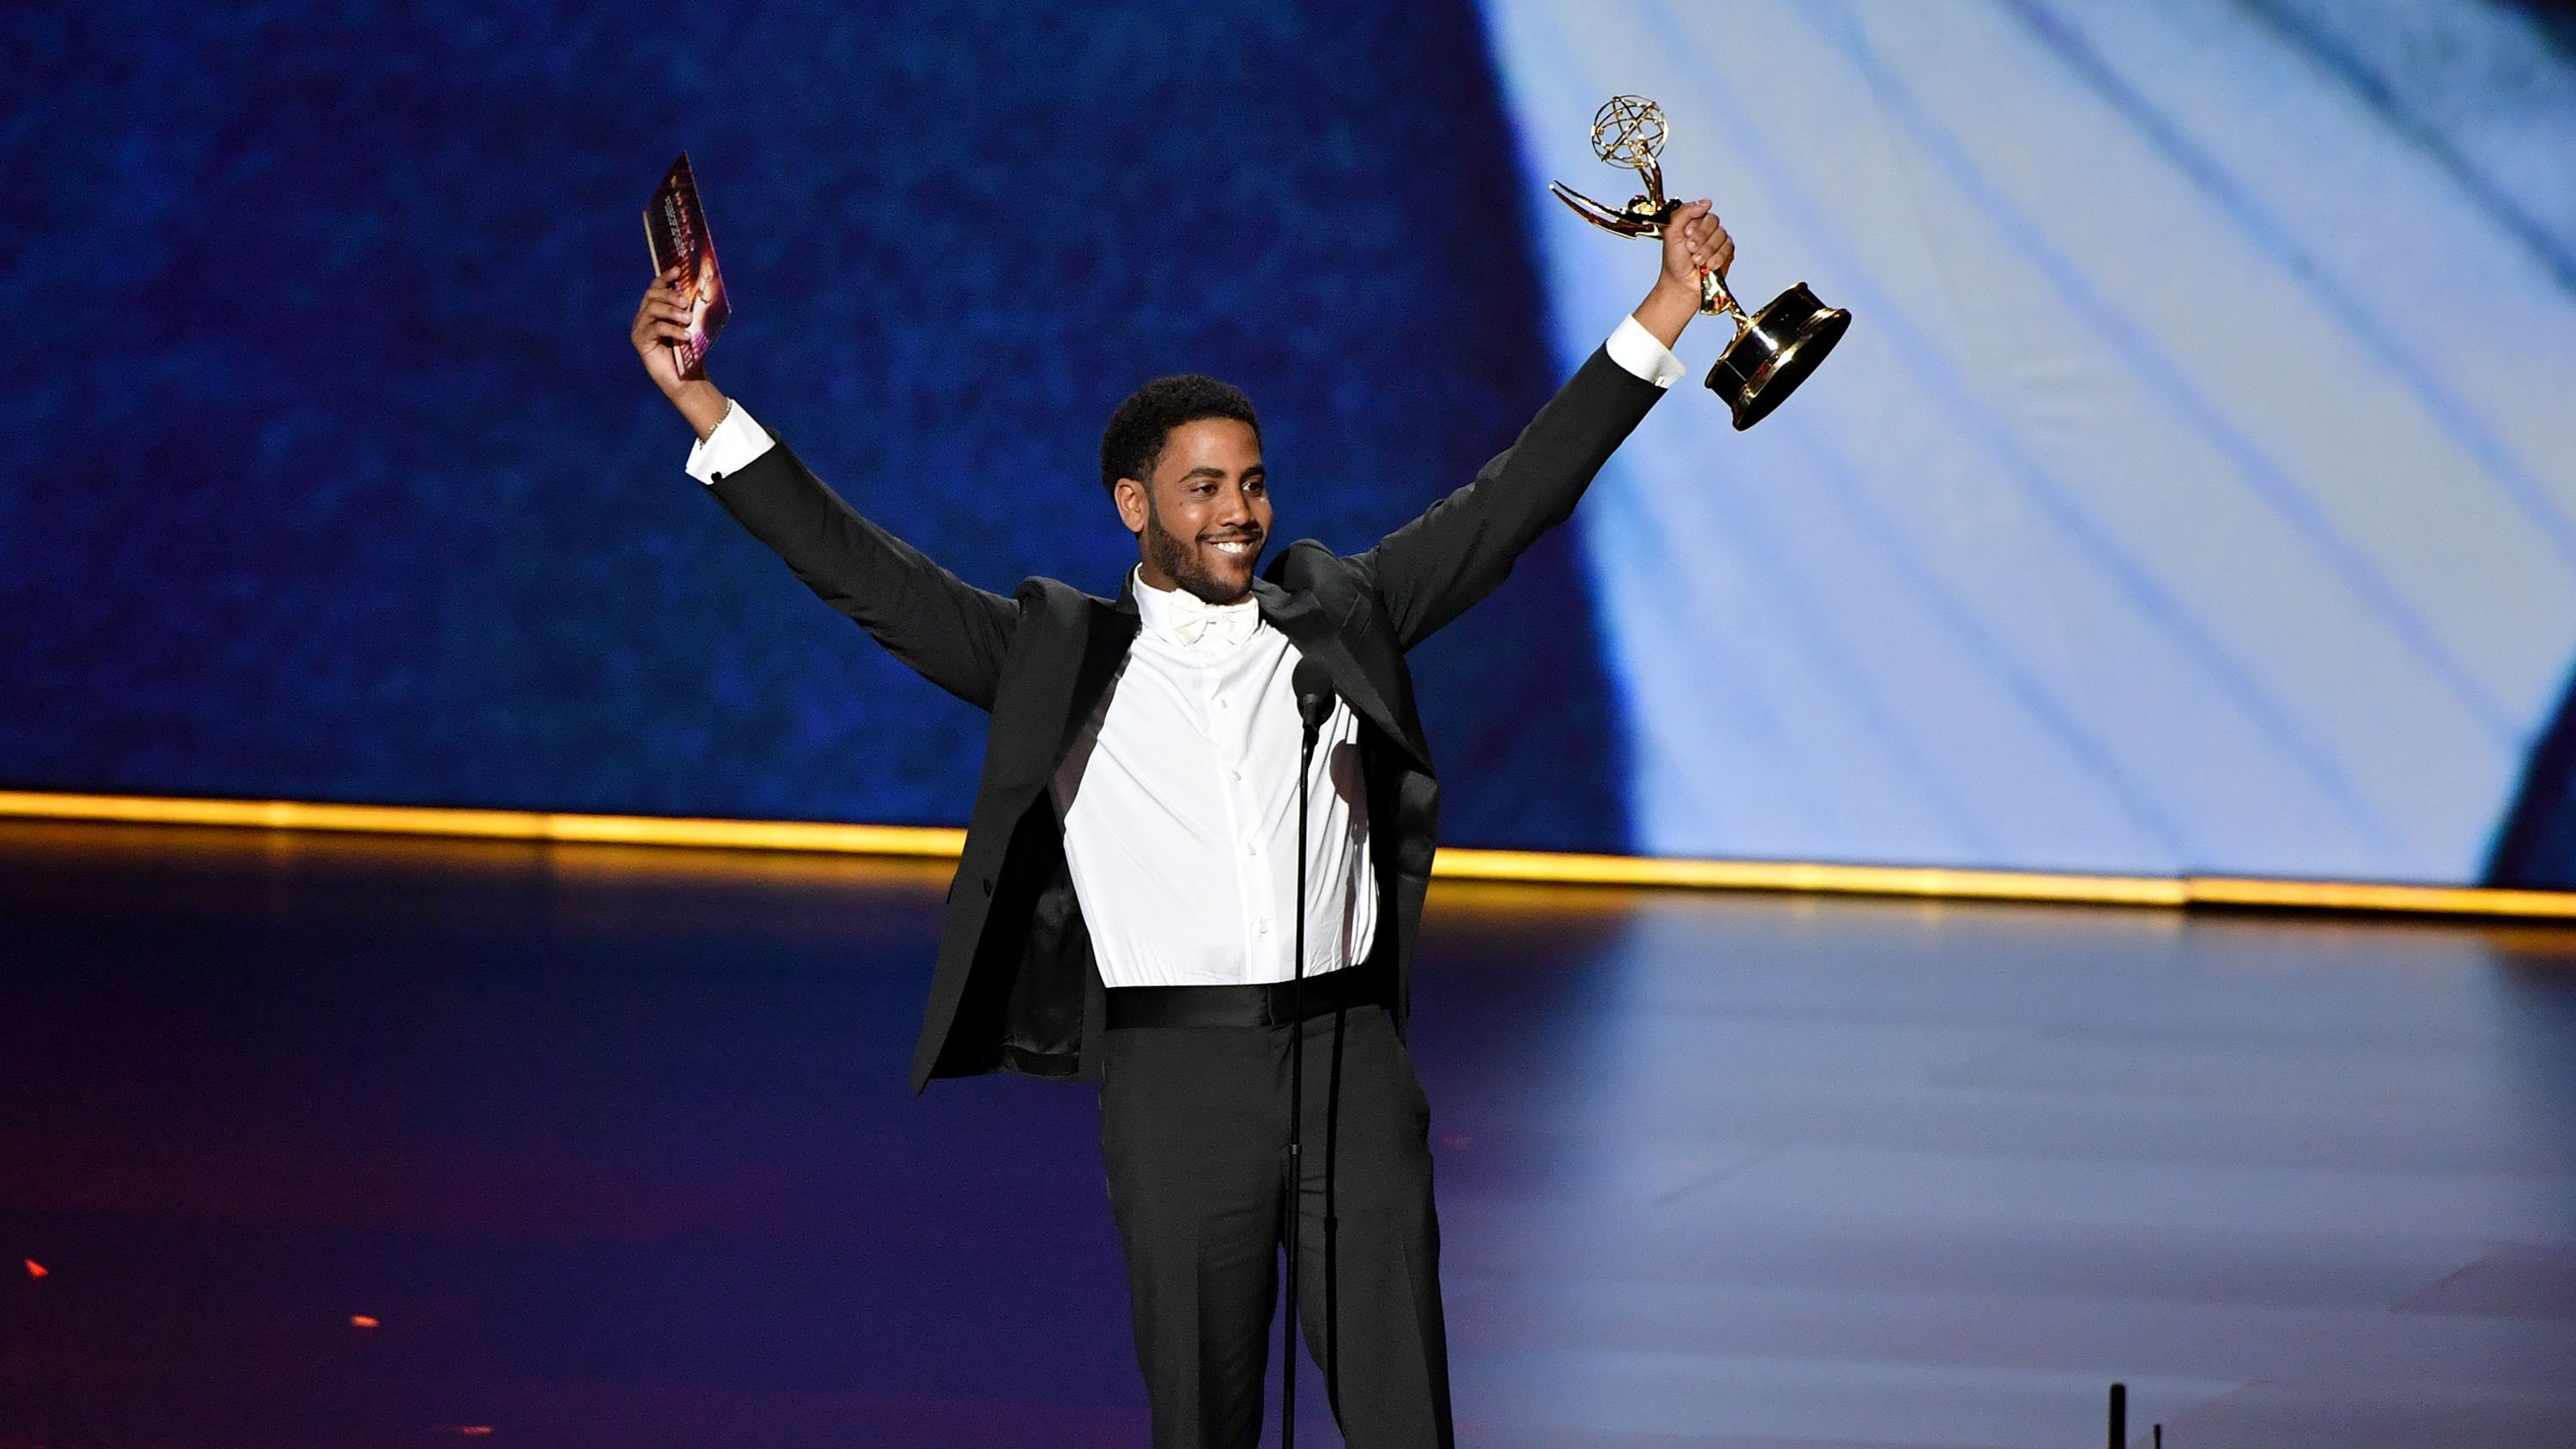 Jharrel Jerome pays tribute to exonerated Central Park Five in Emmy acceptance speech